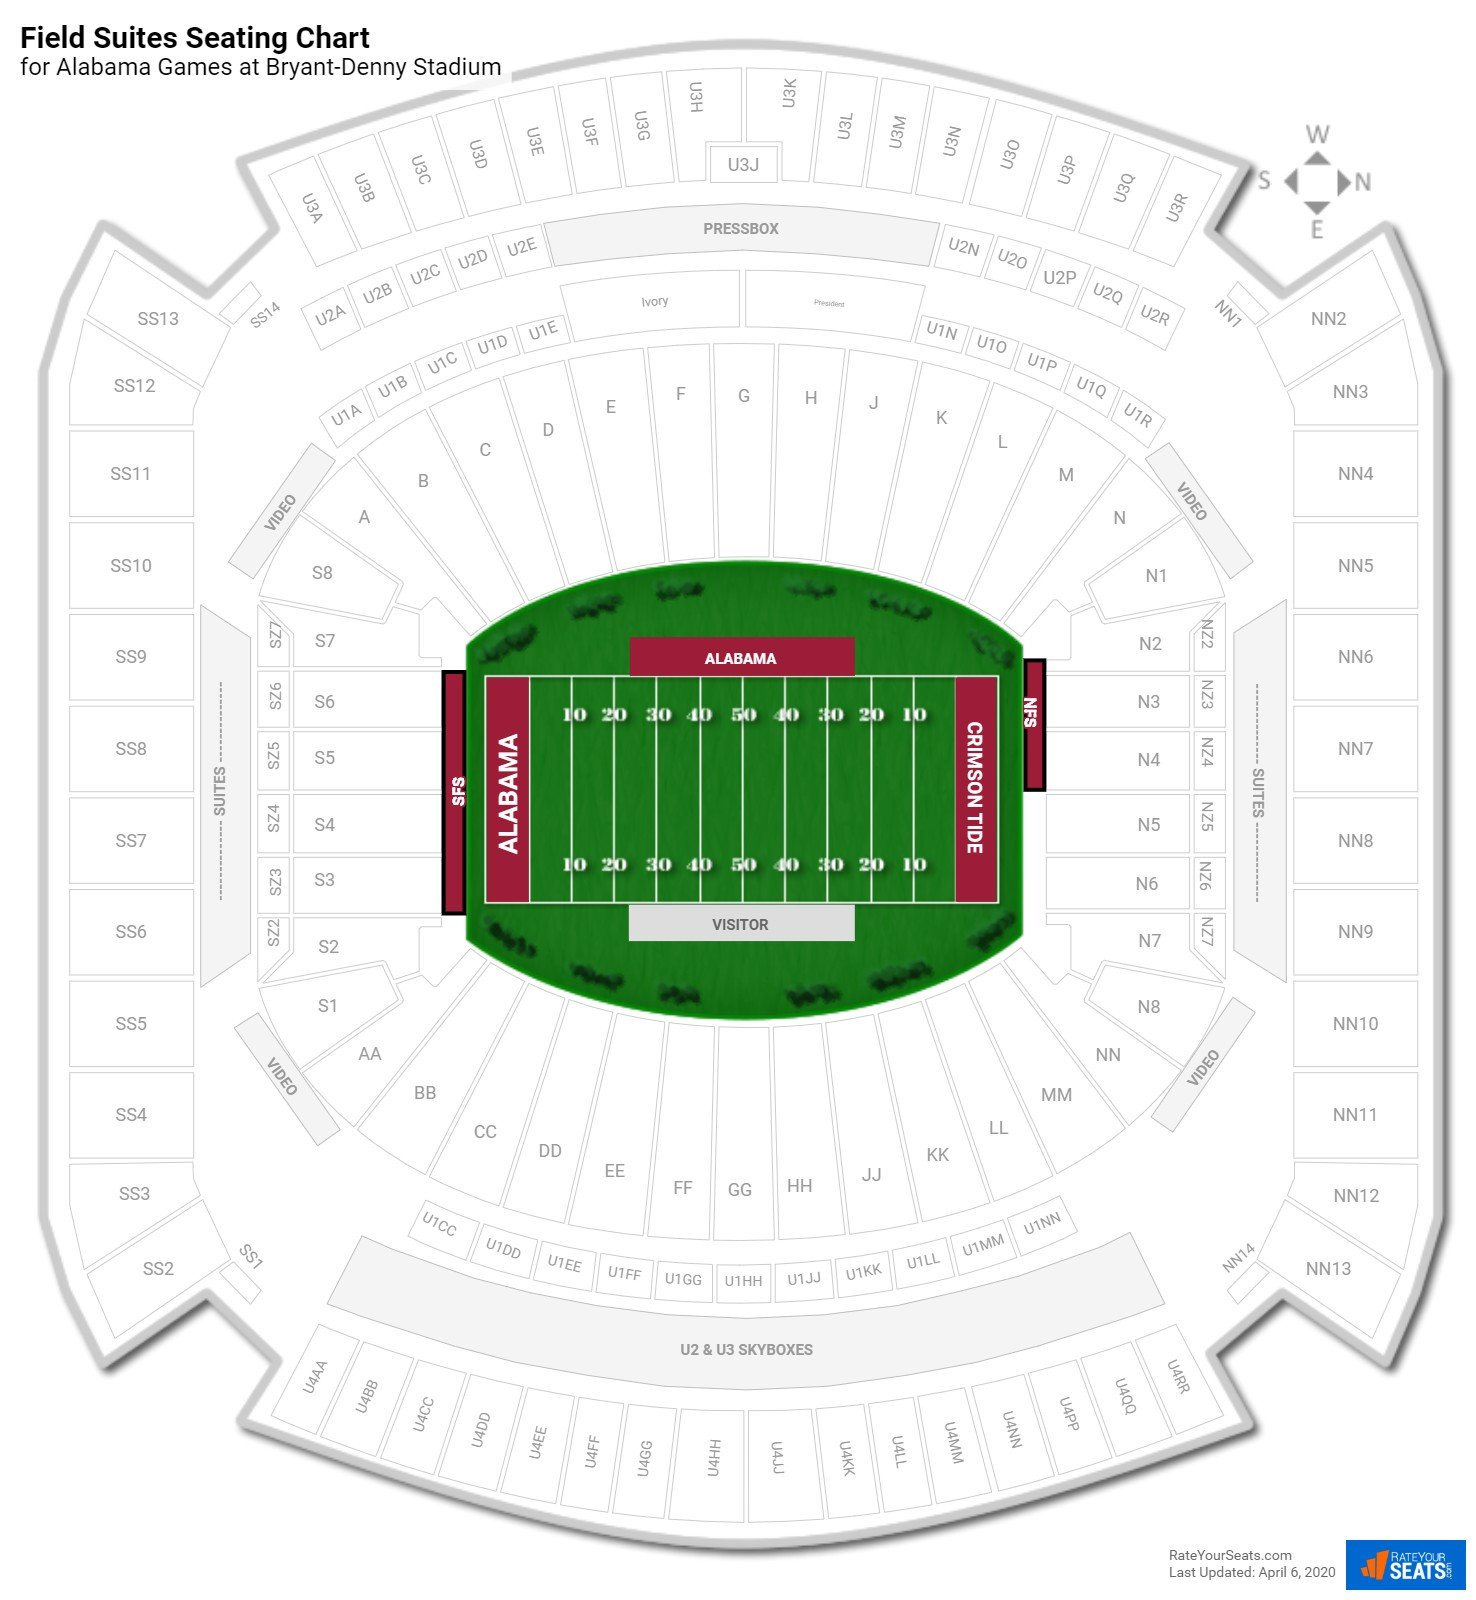 Bryant-Denny Stadium Field Suites seating chart